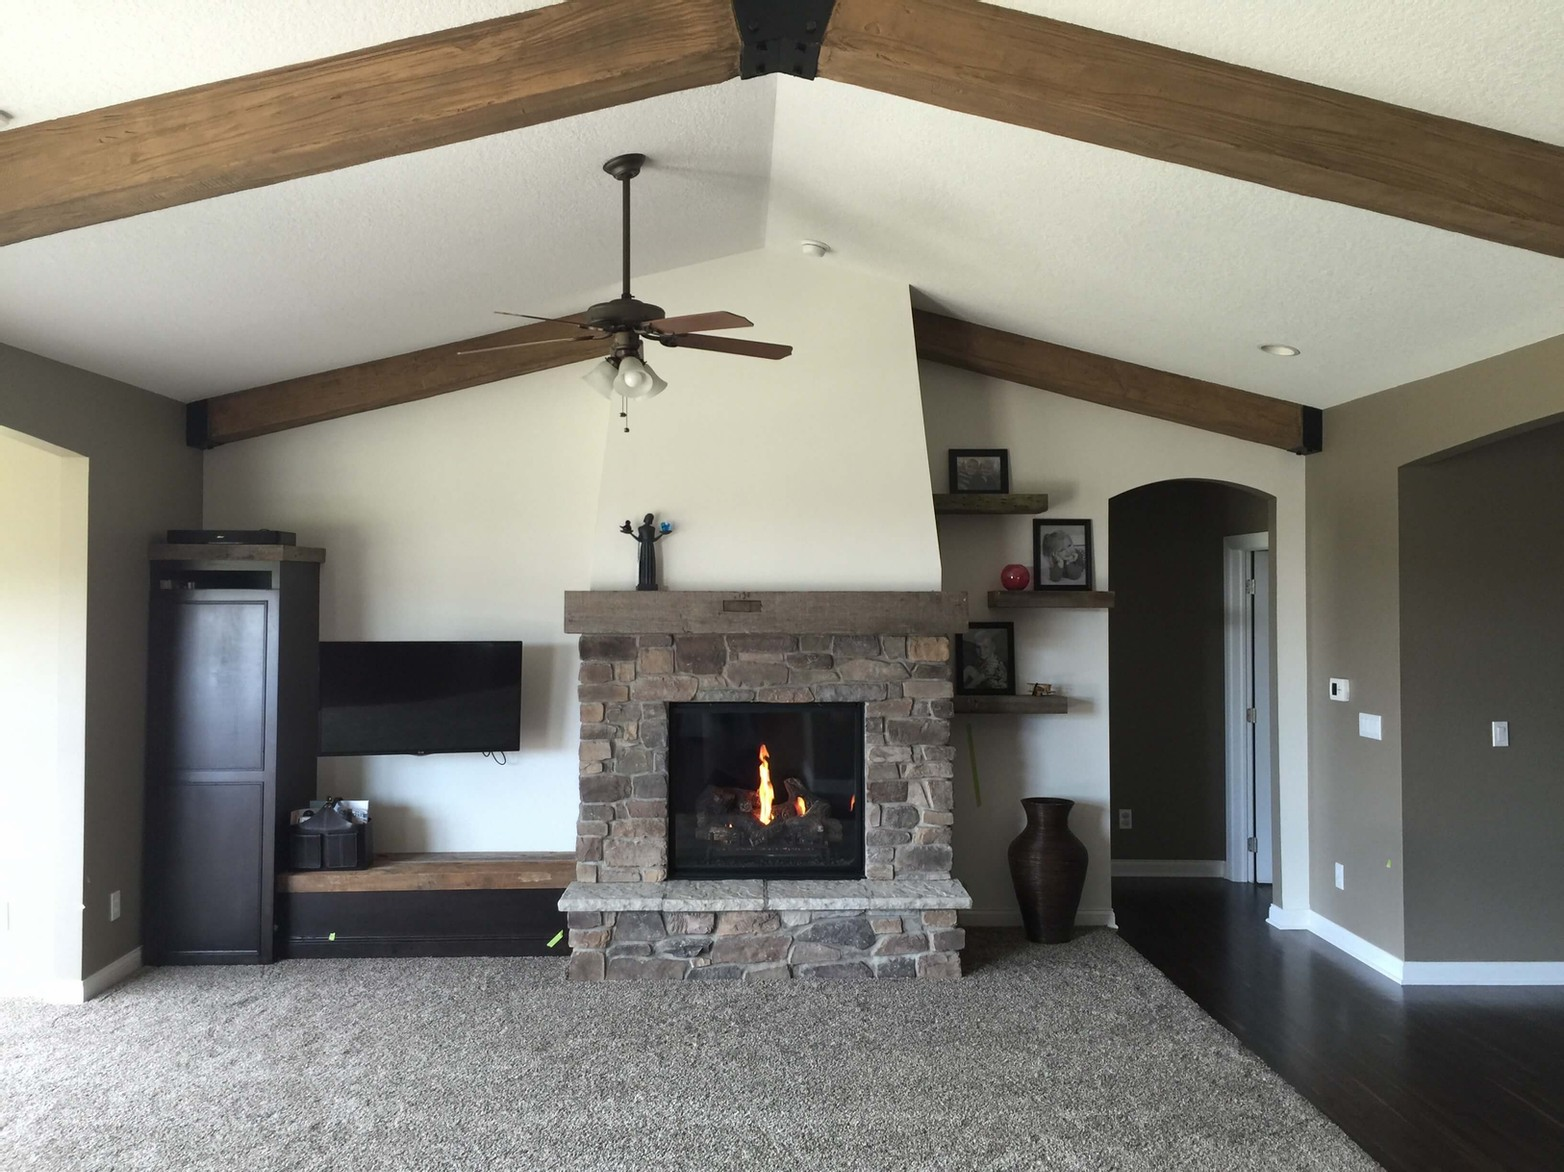 Fireplace and custom shelving